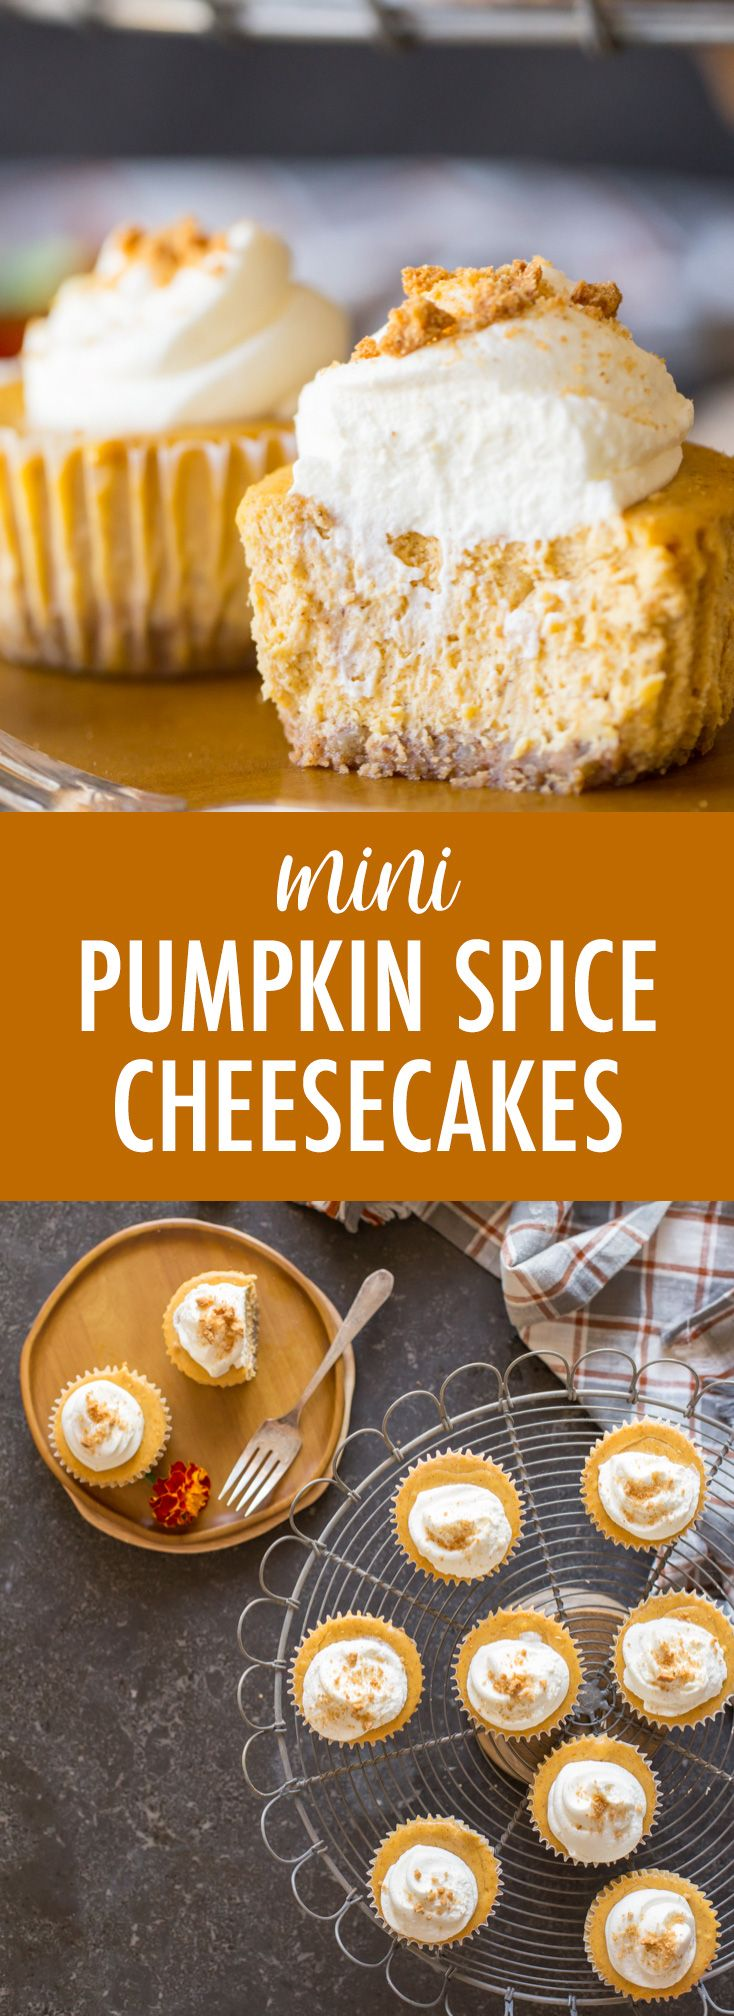 These Pumpkin Spice Cheesecakes are perfect for your Thanksgiving dessert. They are silky smooth and creamy, perfectly spiced, and can be made in advance! #pumpkinpie #fallrecipes #thanksgiving #cheesecake #dessert #pumpkinspicecupcakes